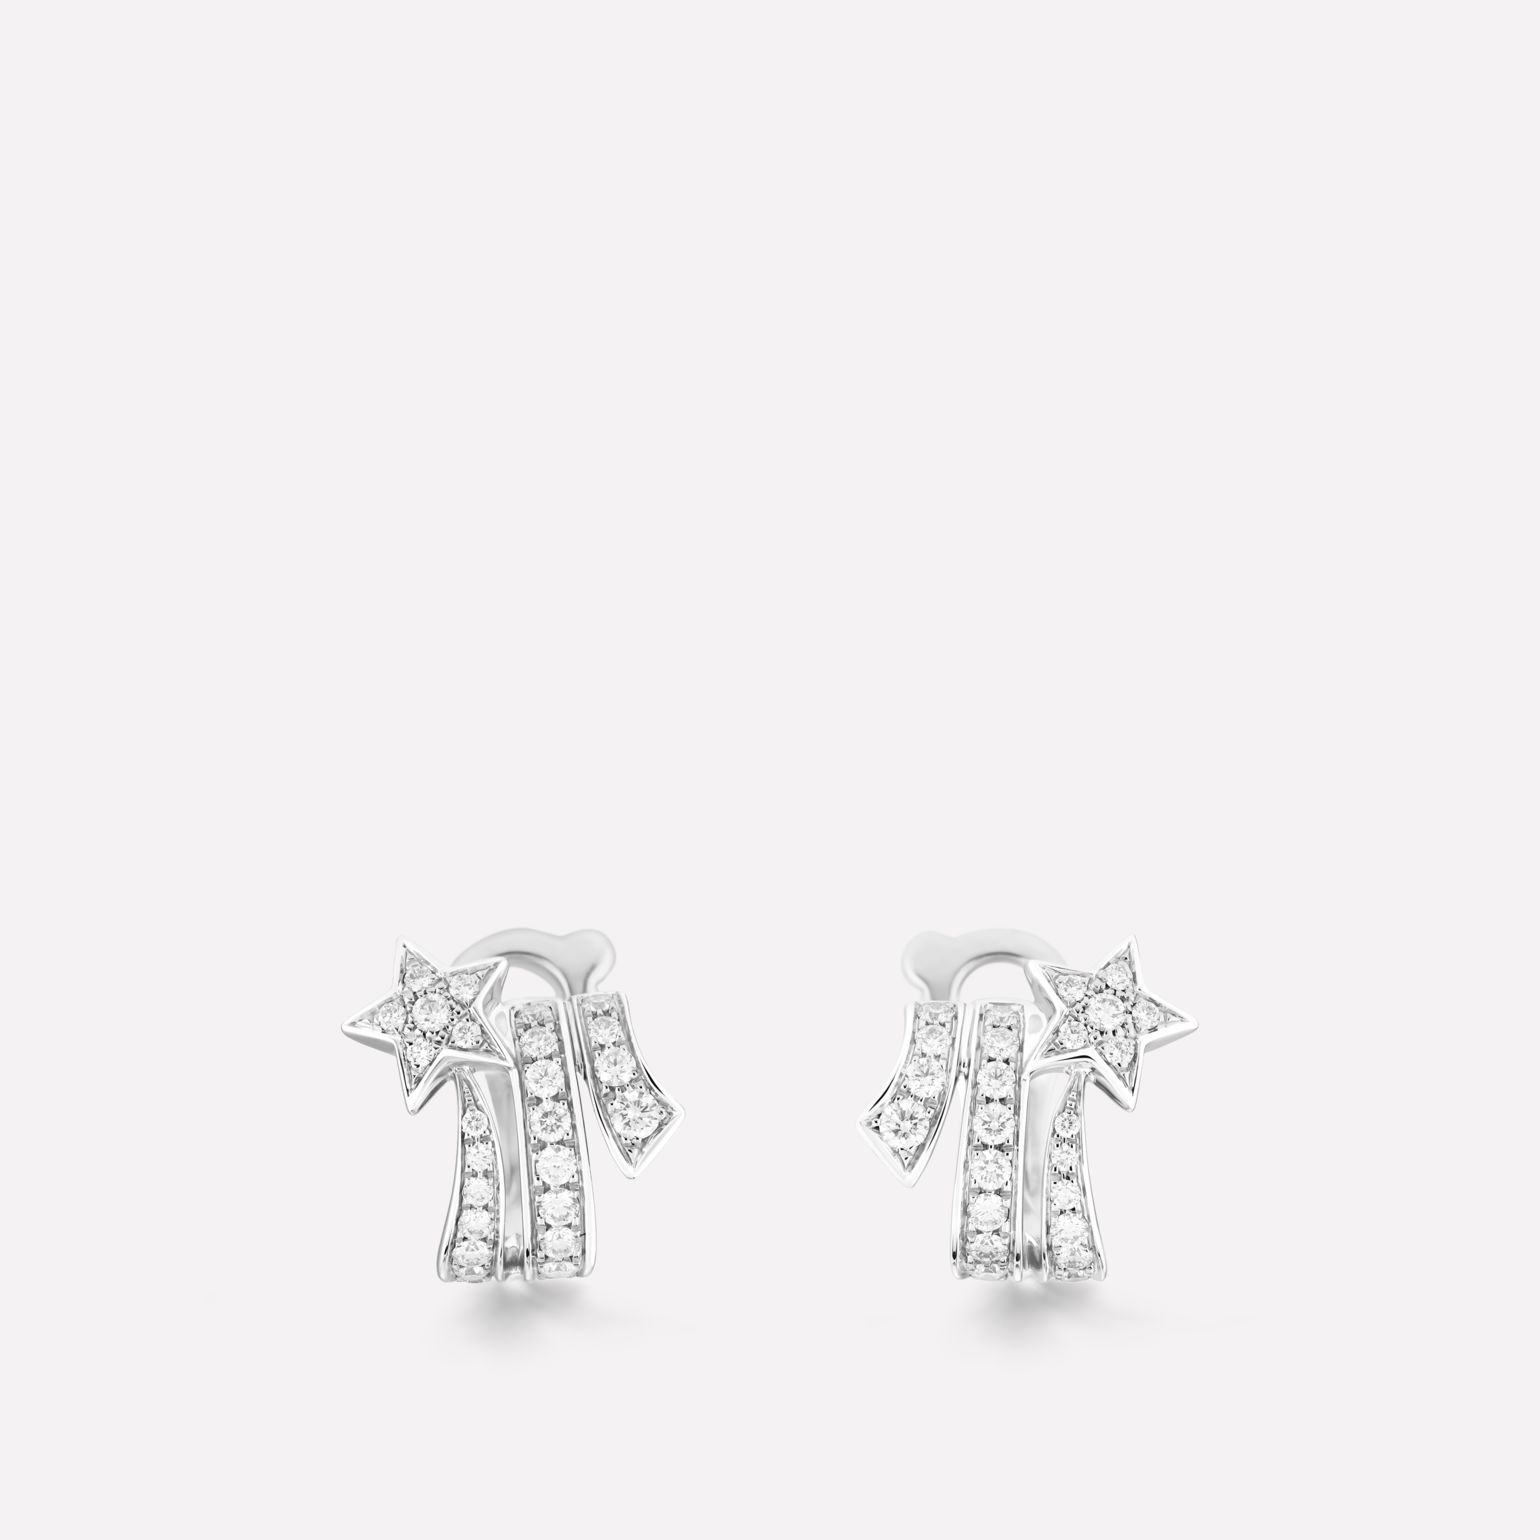 Boucles d'oreilles Étoile Filante Or blanc 18 carats, diamants